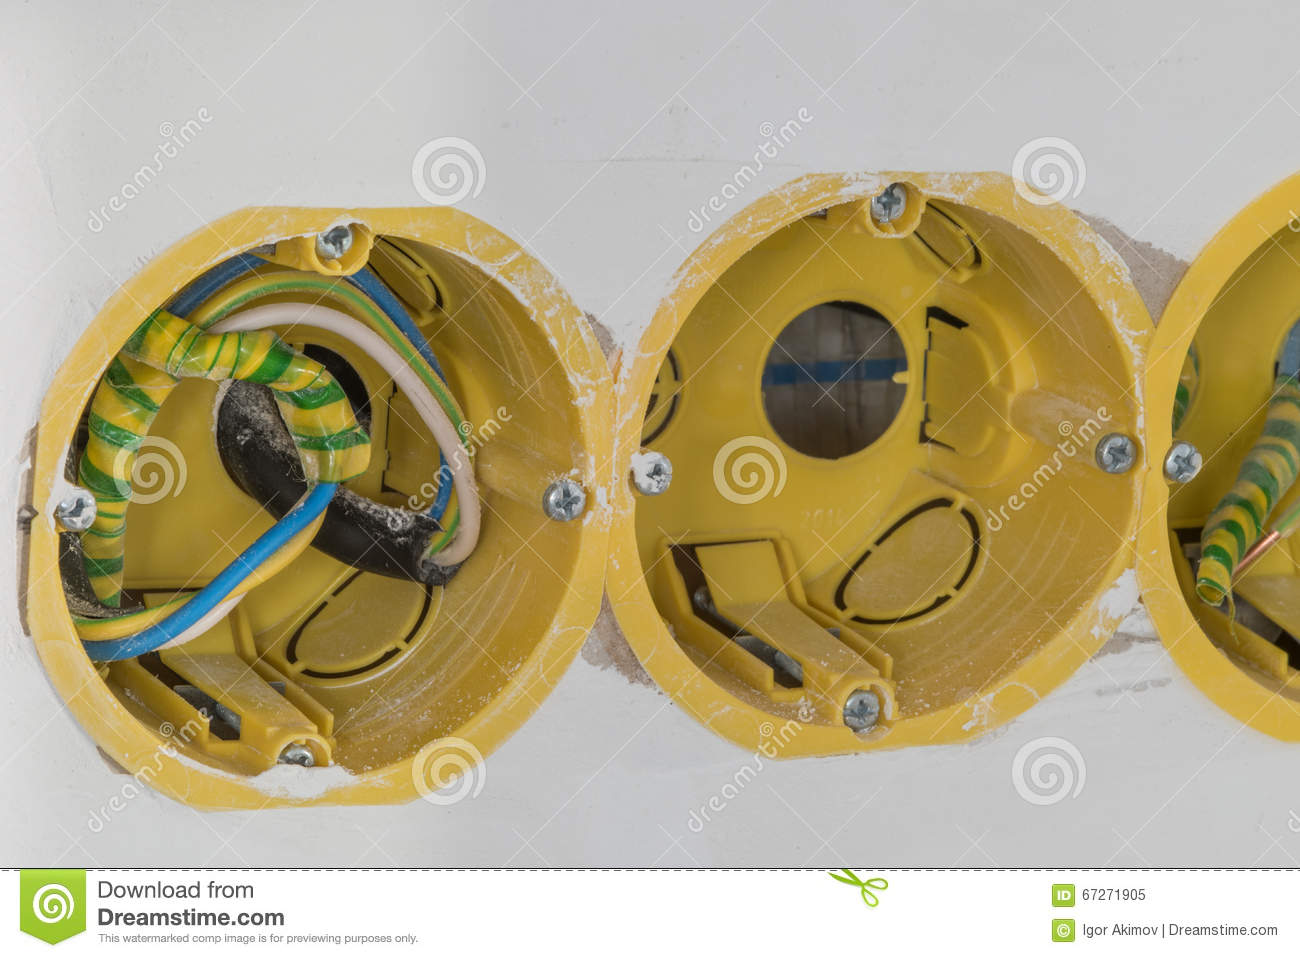 Close Up Electrical Distribution System Installation In New Buil Multiple Receptacles On The Same Circuit Are Connected Household Box For Connecting An Outlet A Residential Building White Unpainted Wall Of Yellow Color With Wires During